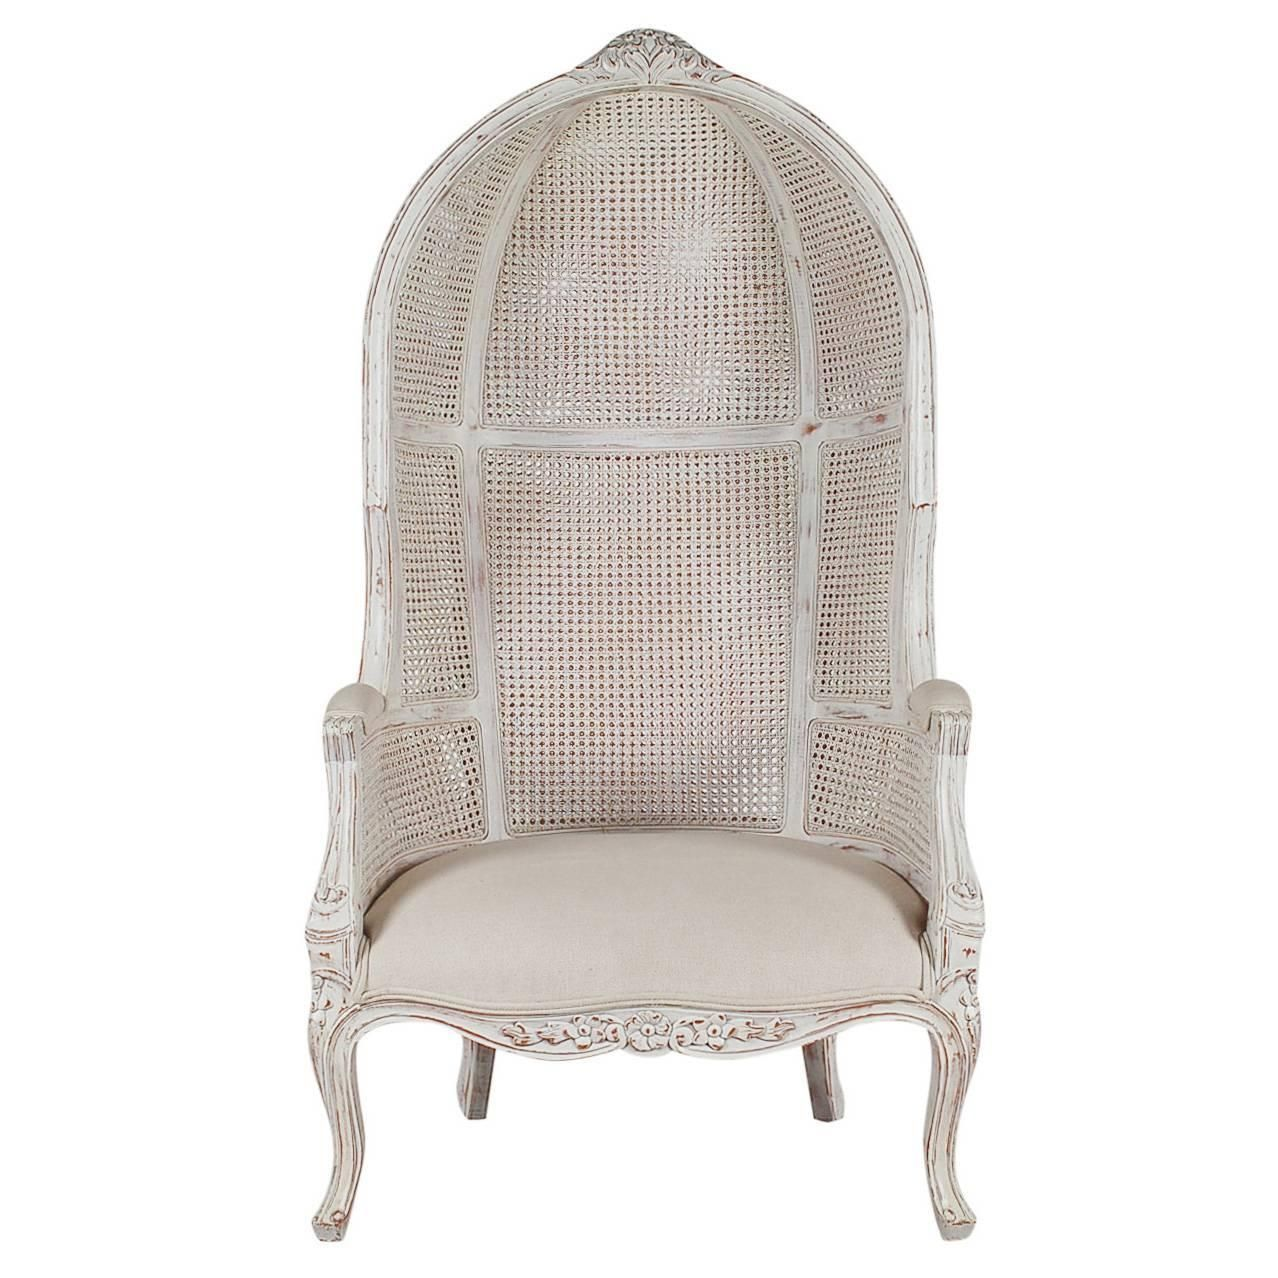 Canopy chair dimensions - French Style Cane Wingback Canopy Porters Chair